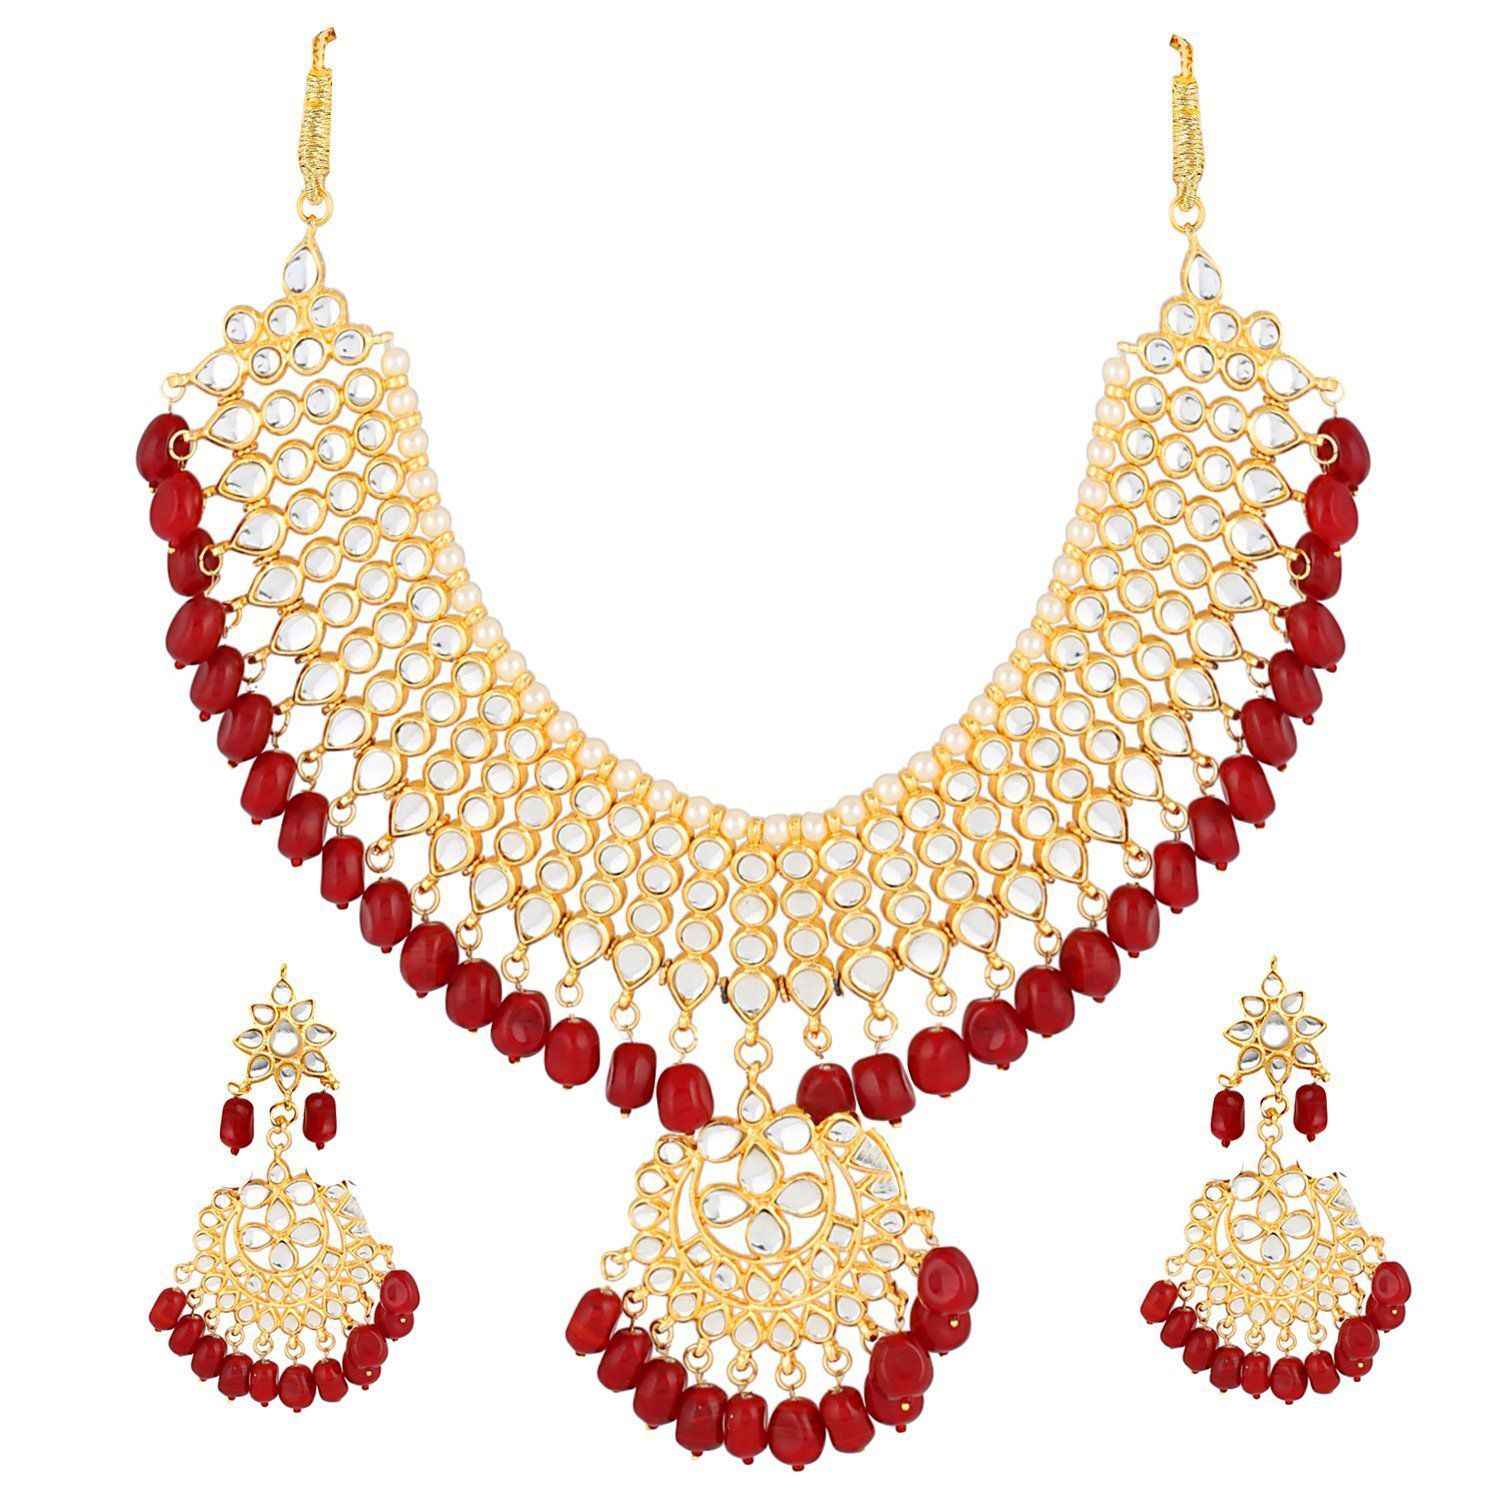 cd9c0dc7c ... I Jewels Traditional Kundan   Pearl Choker Necklace Set For Women  (K7058R) ...